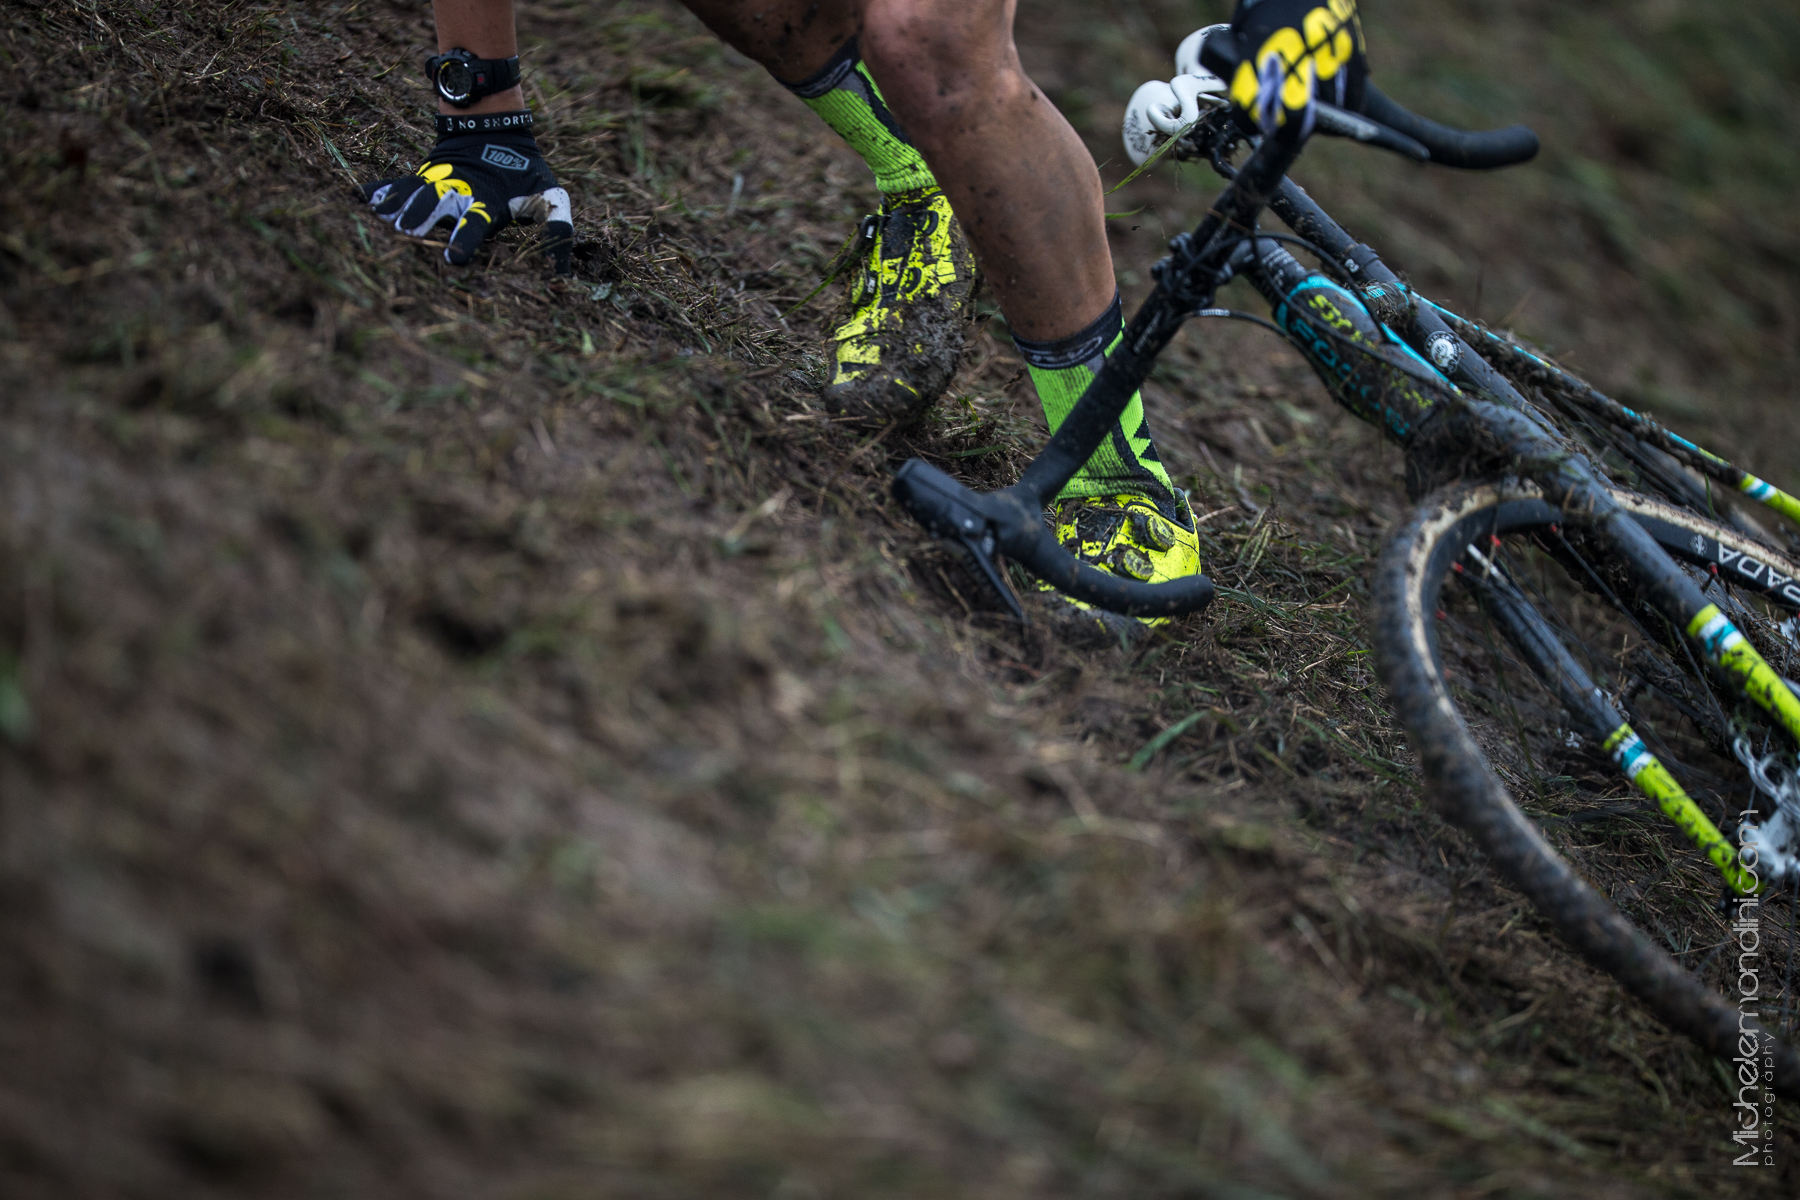 Slippery off camber for a Northwave cyclocross rider in Faè di Oderzo - Ph: Michele Mondini